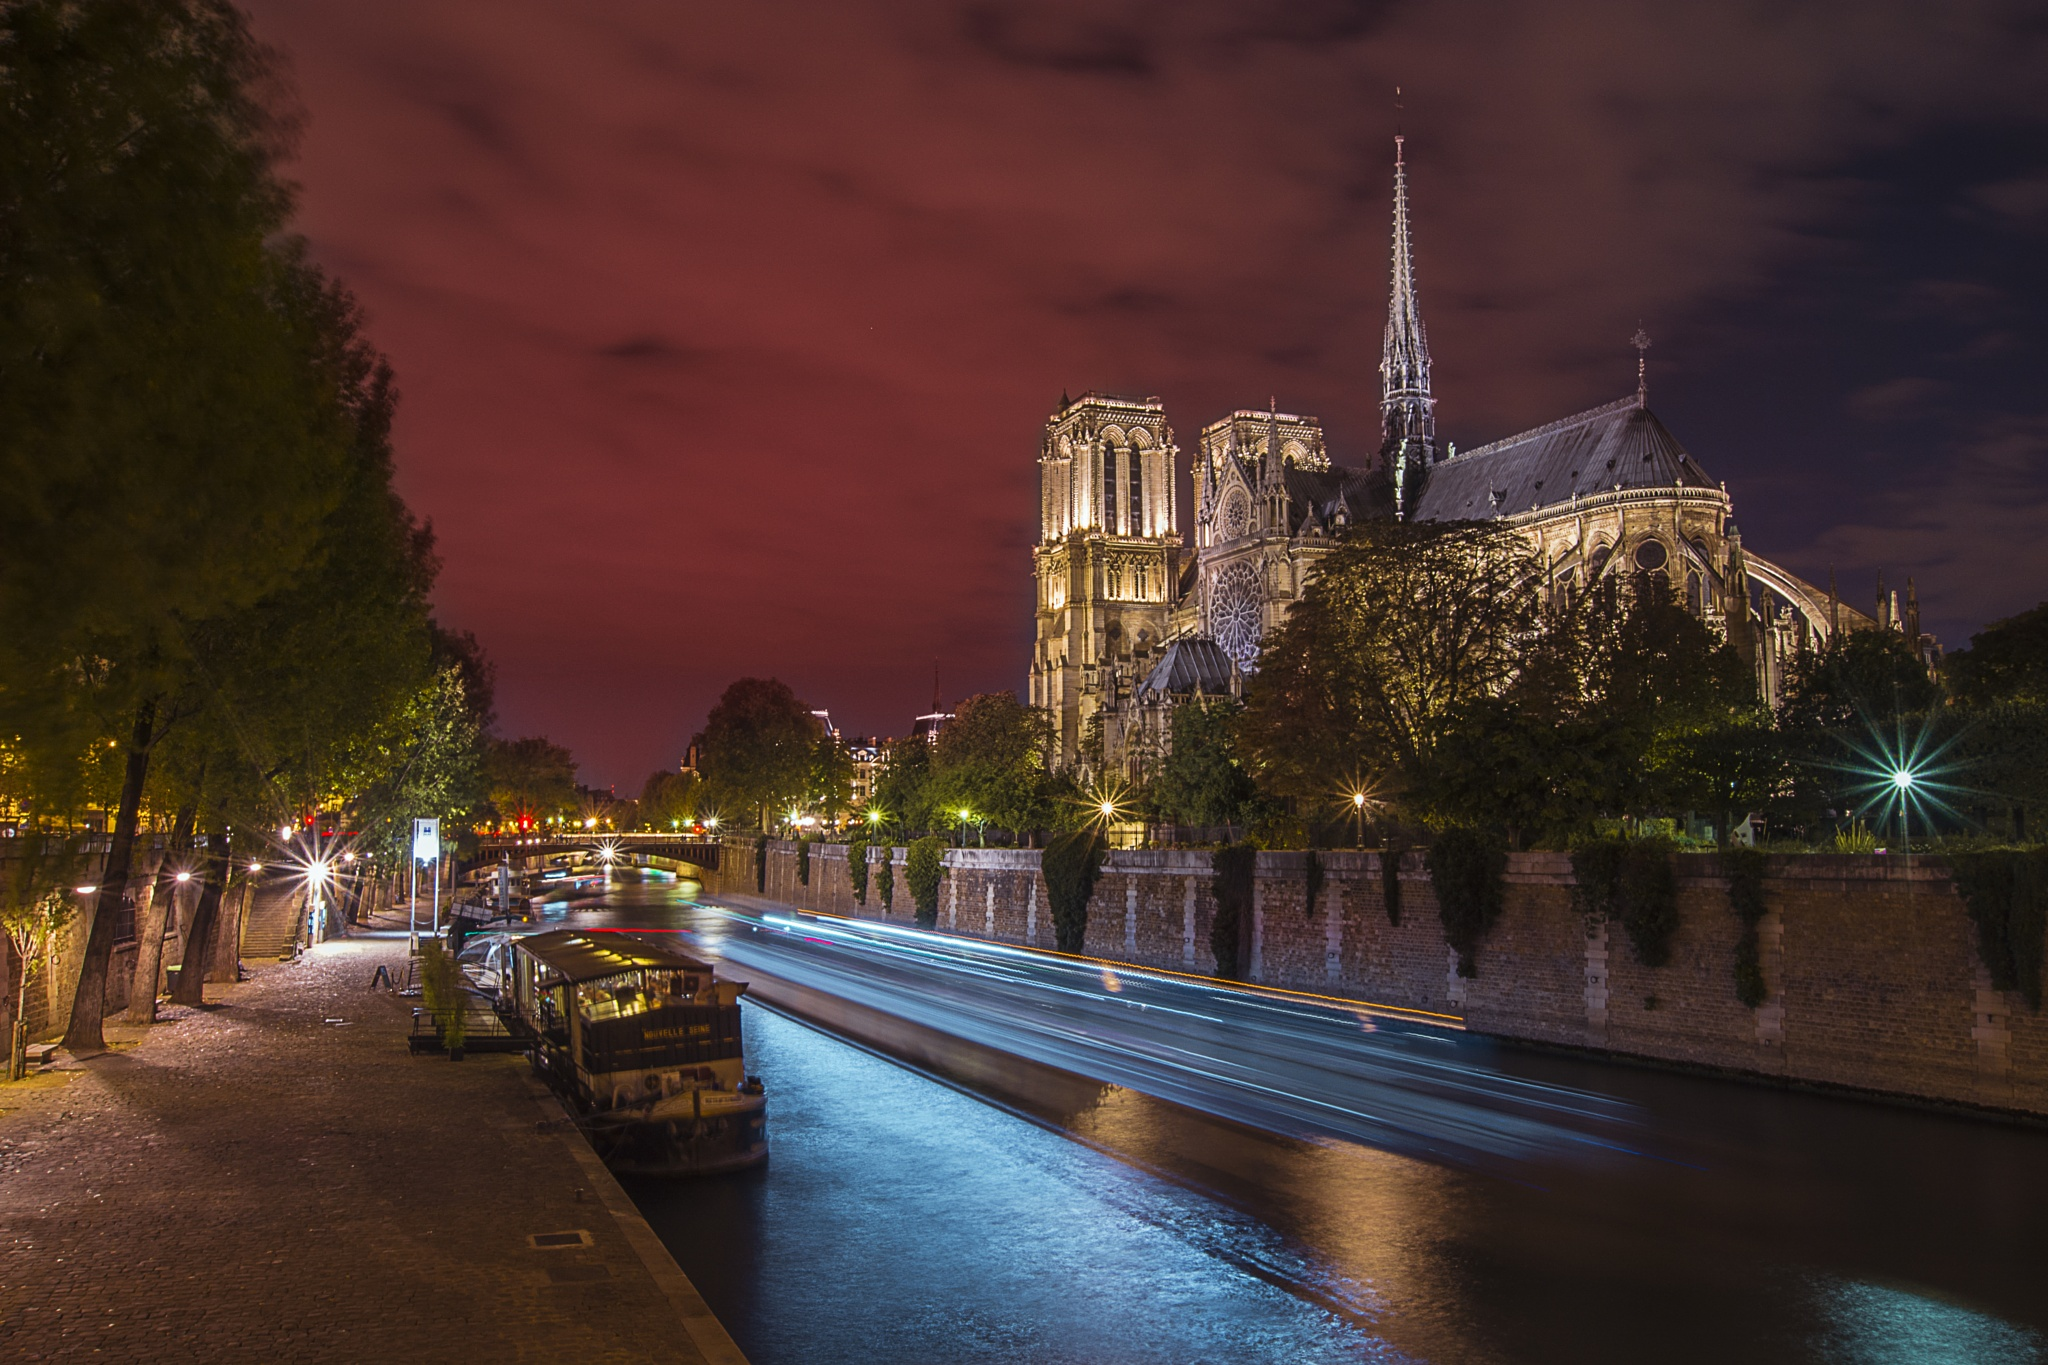 Je t'aime Notre Dame by Roman The Great